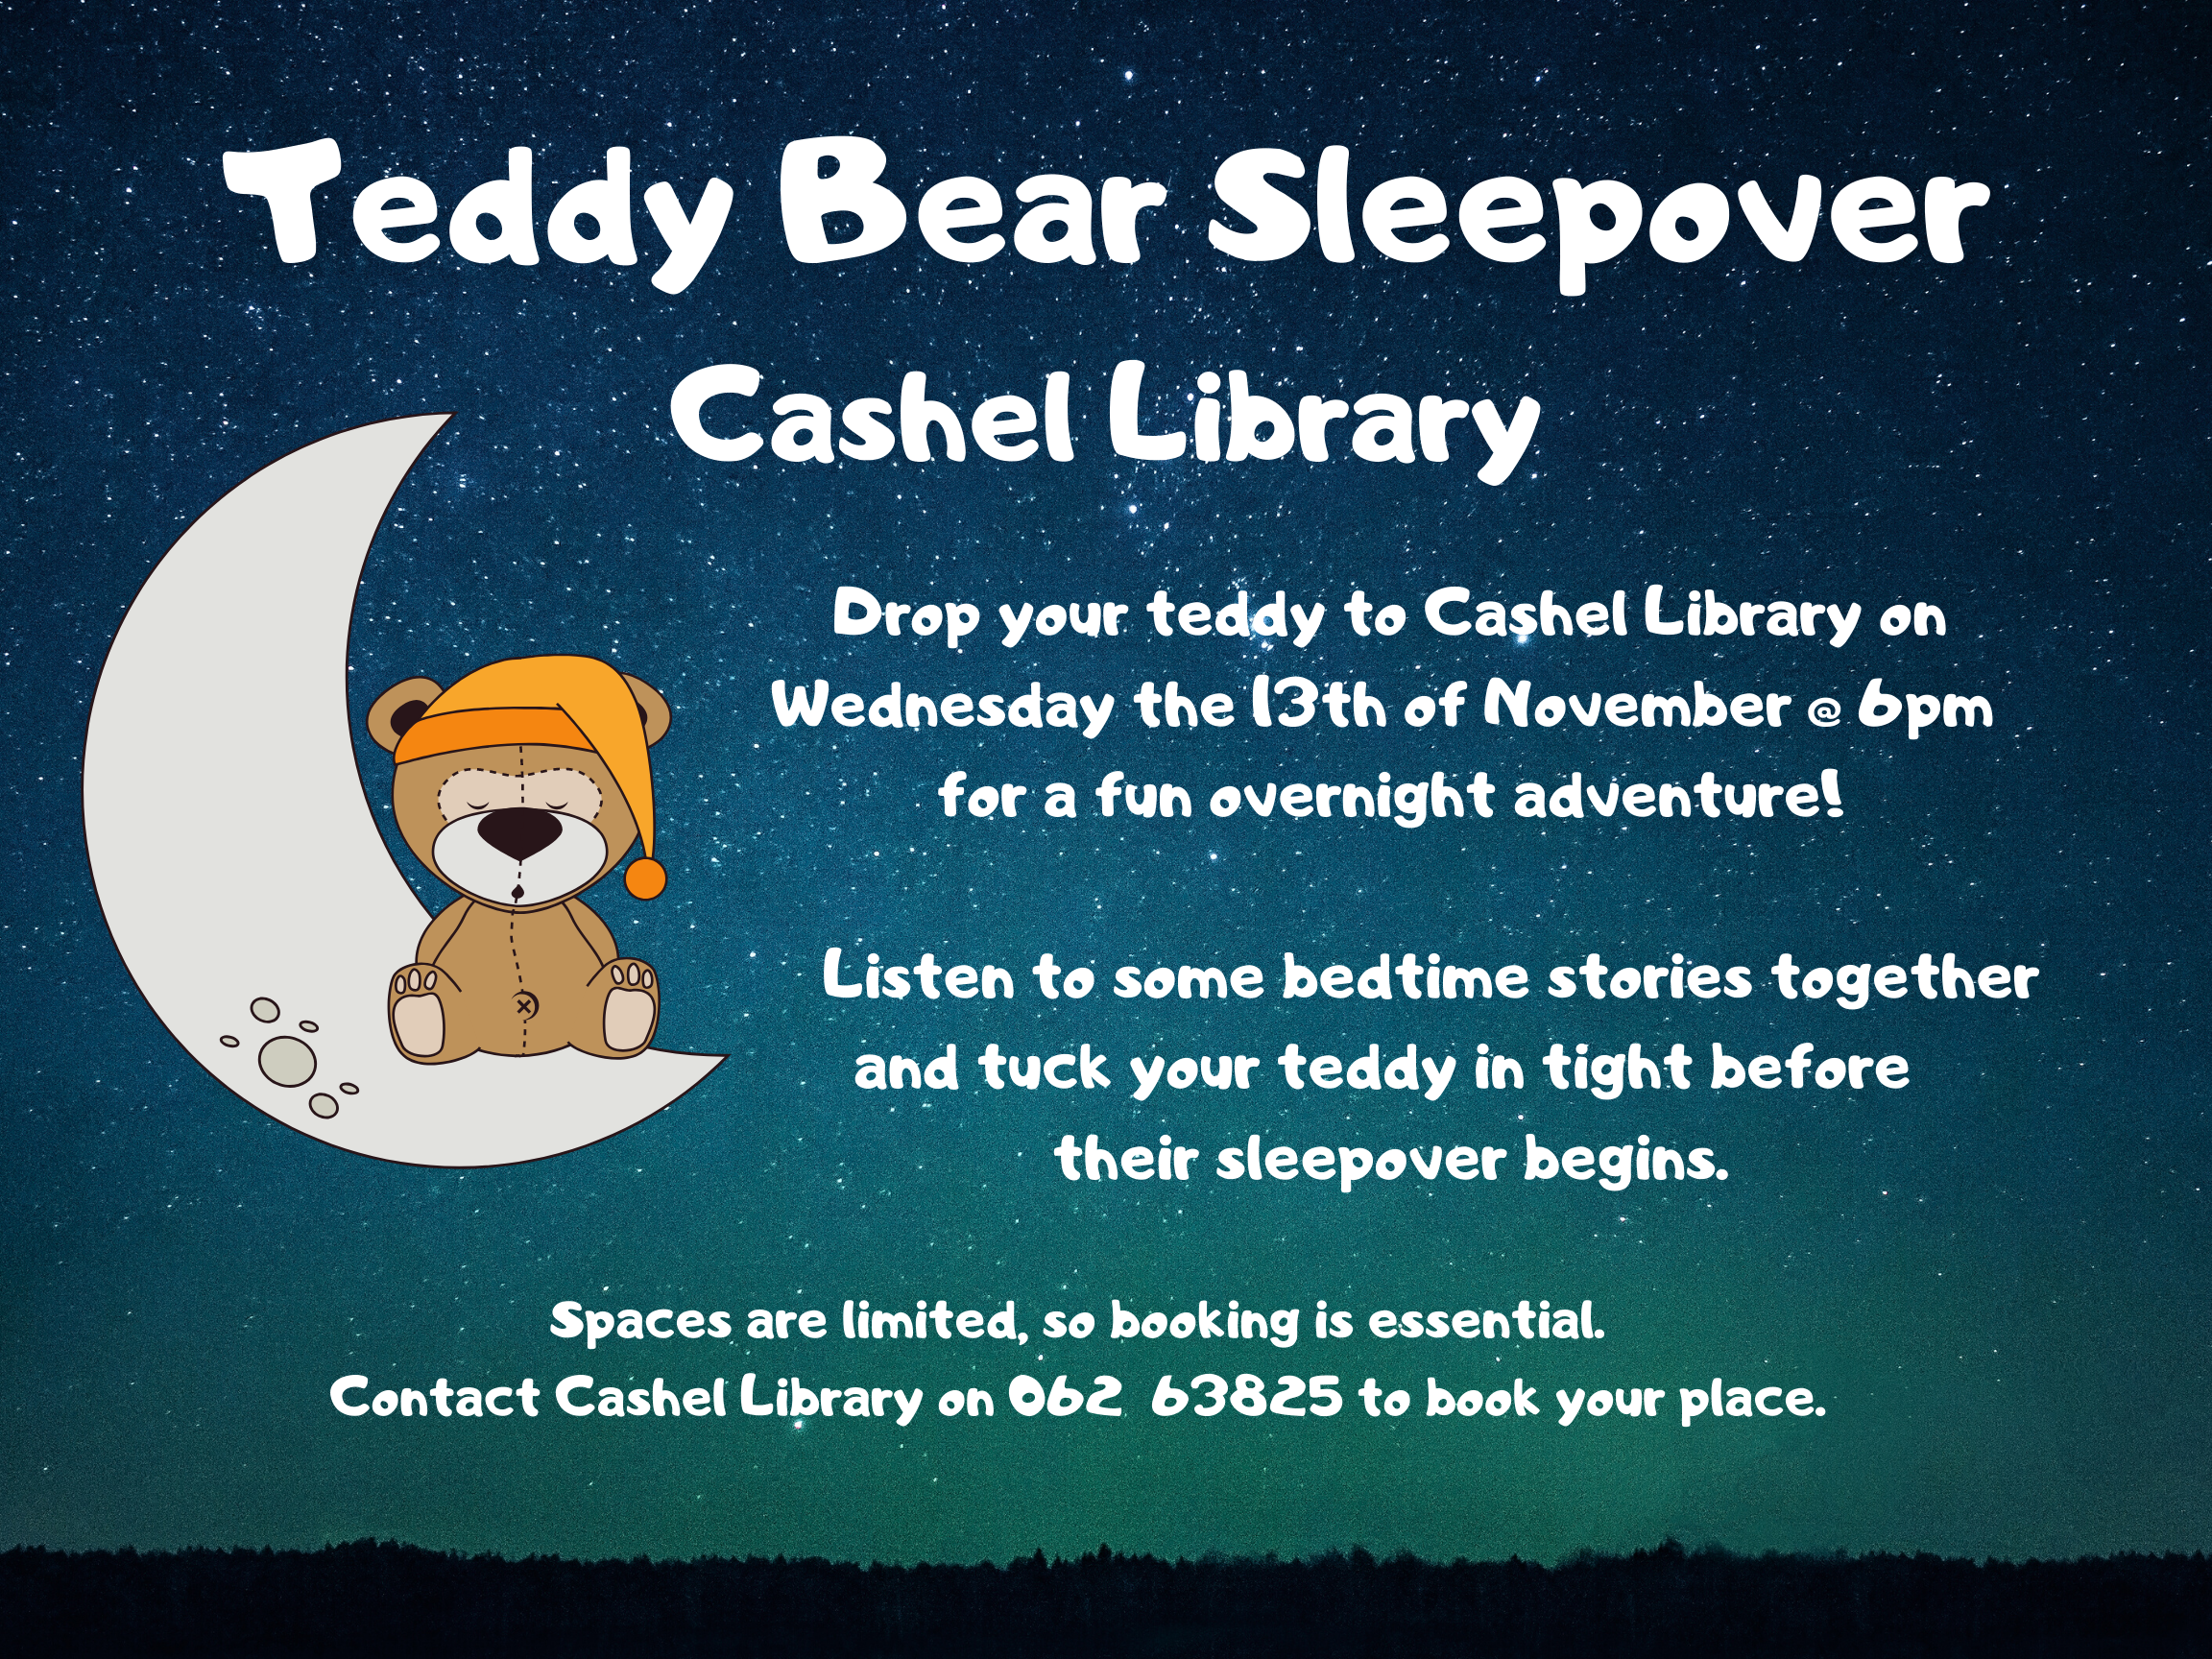 Teddy Bear Sleepover In Cashel Library